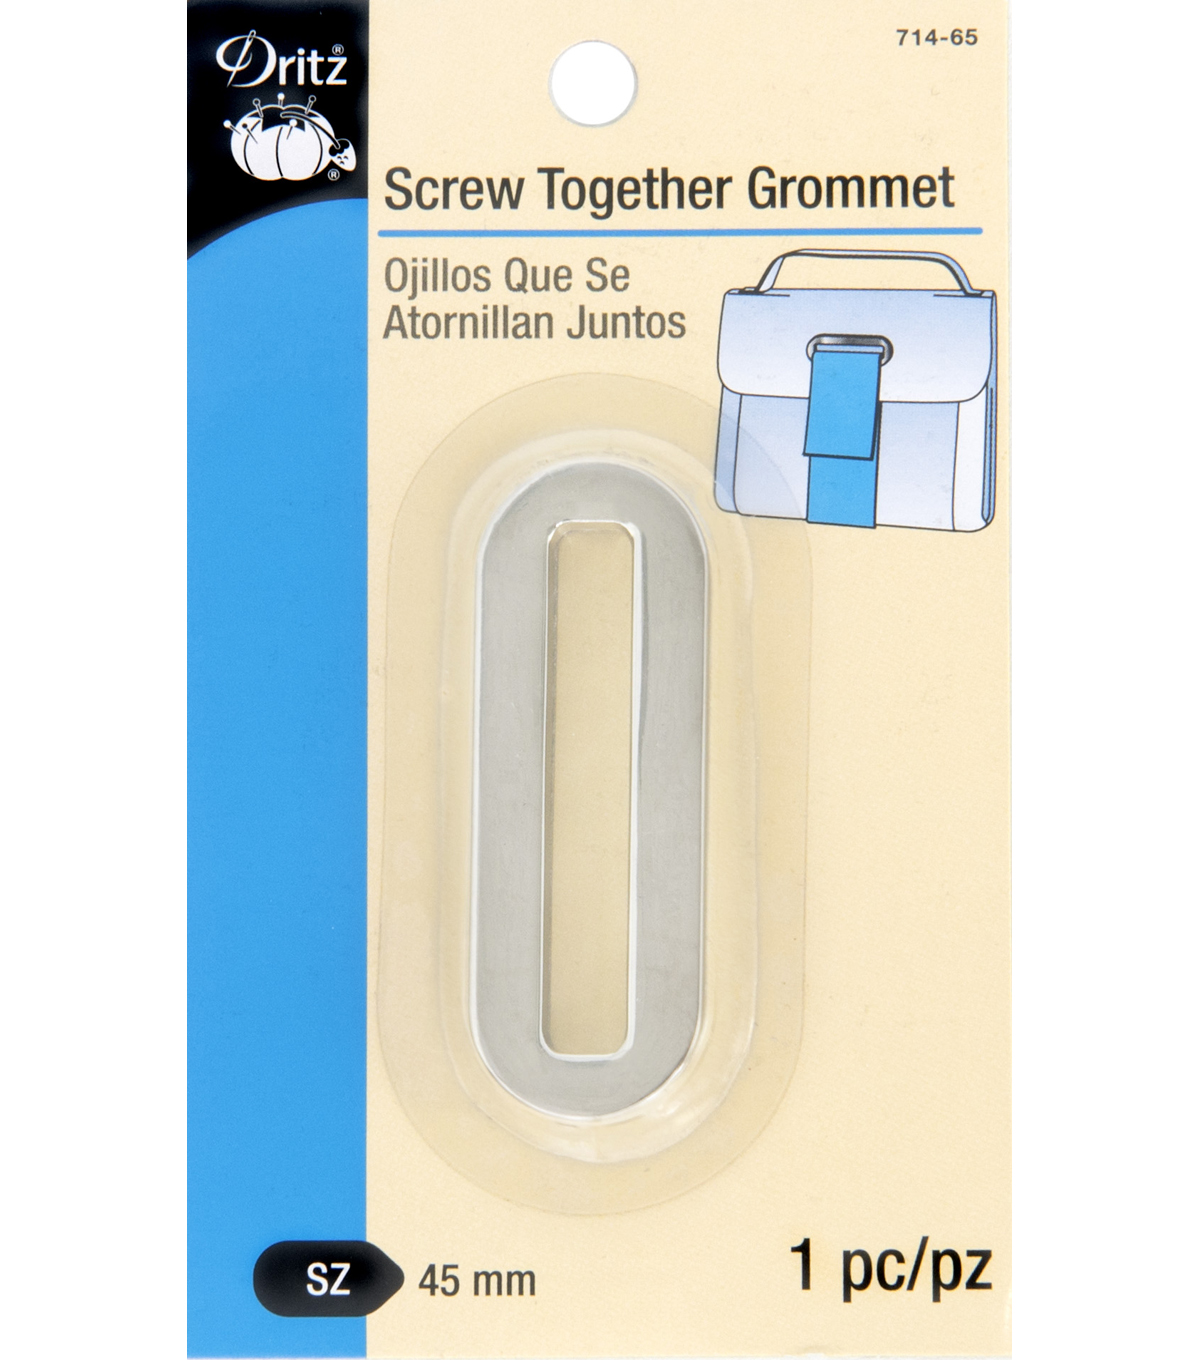 Dritz-Screw Together Grommets Silver